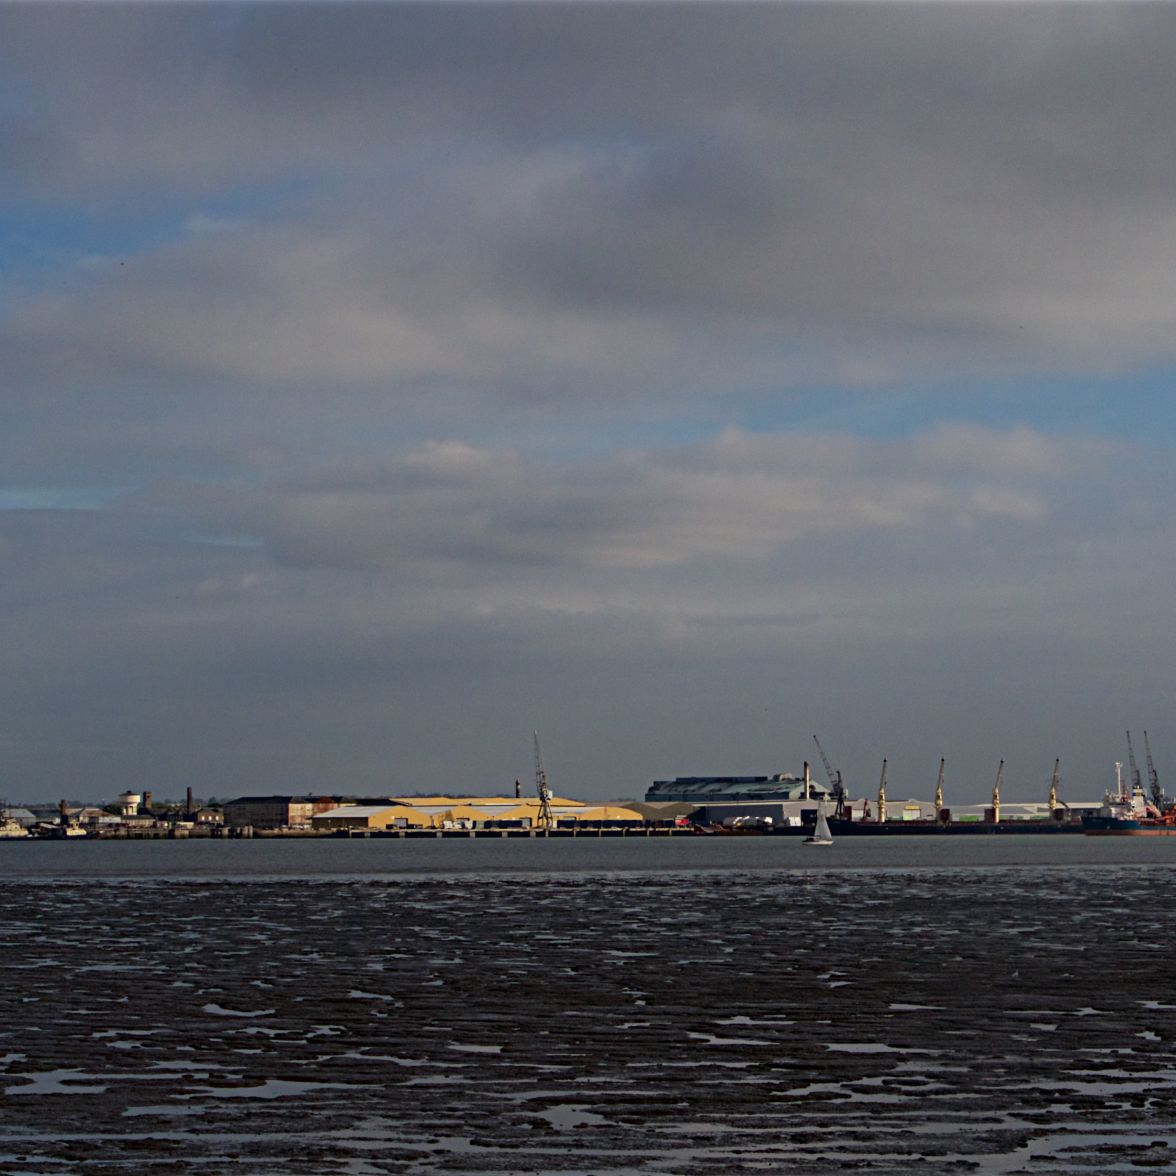 The Port of Sheerness